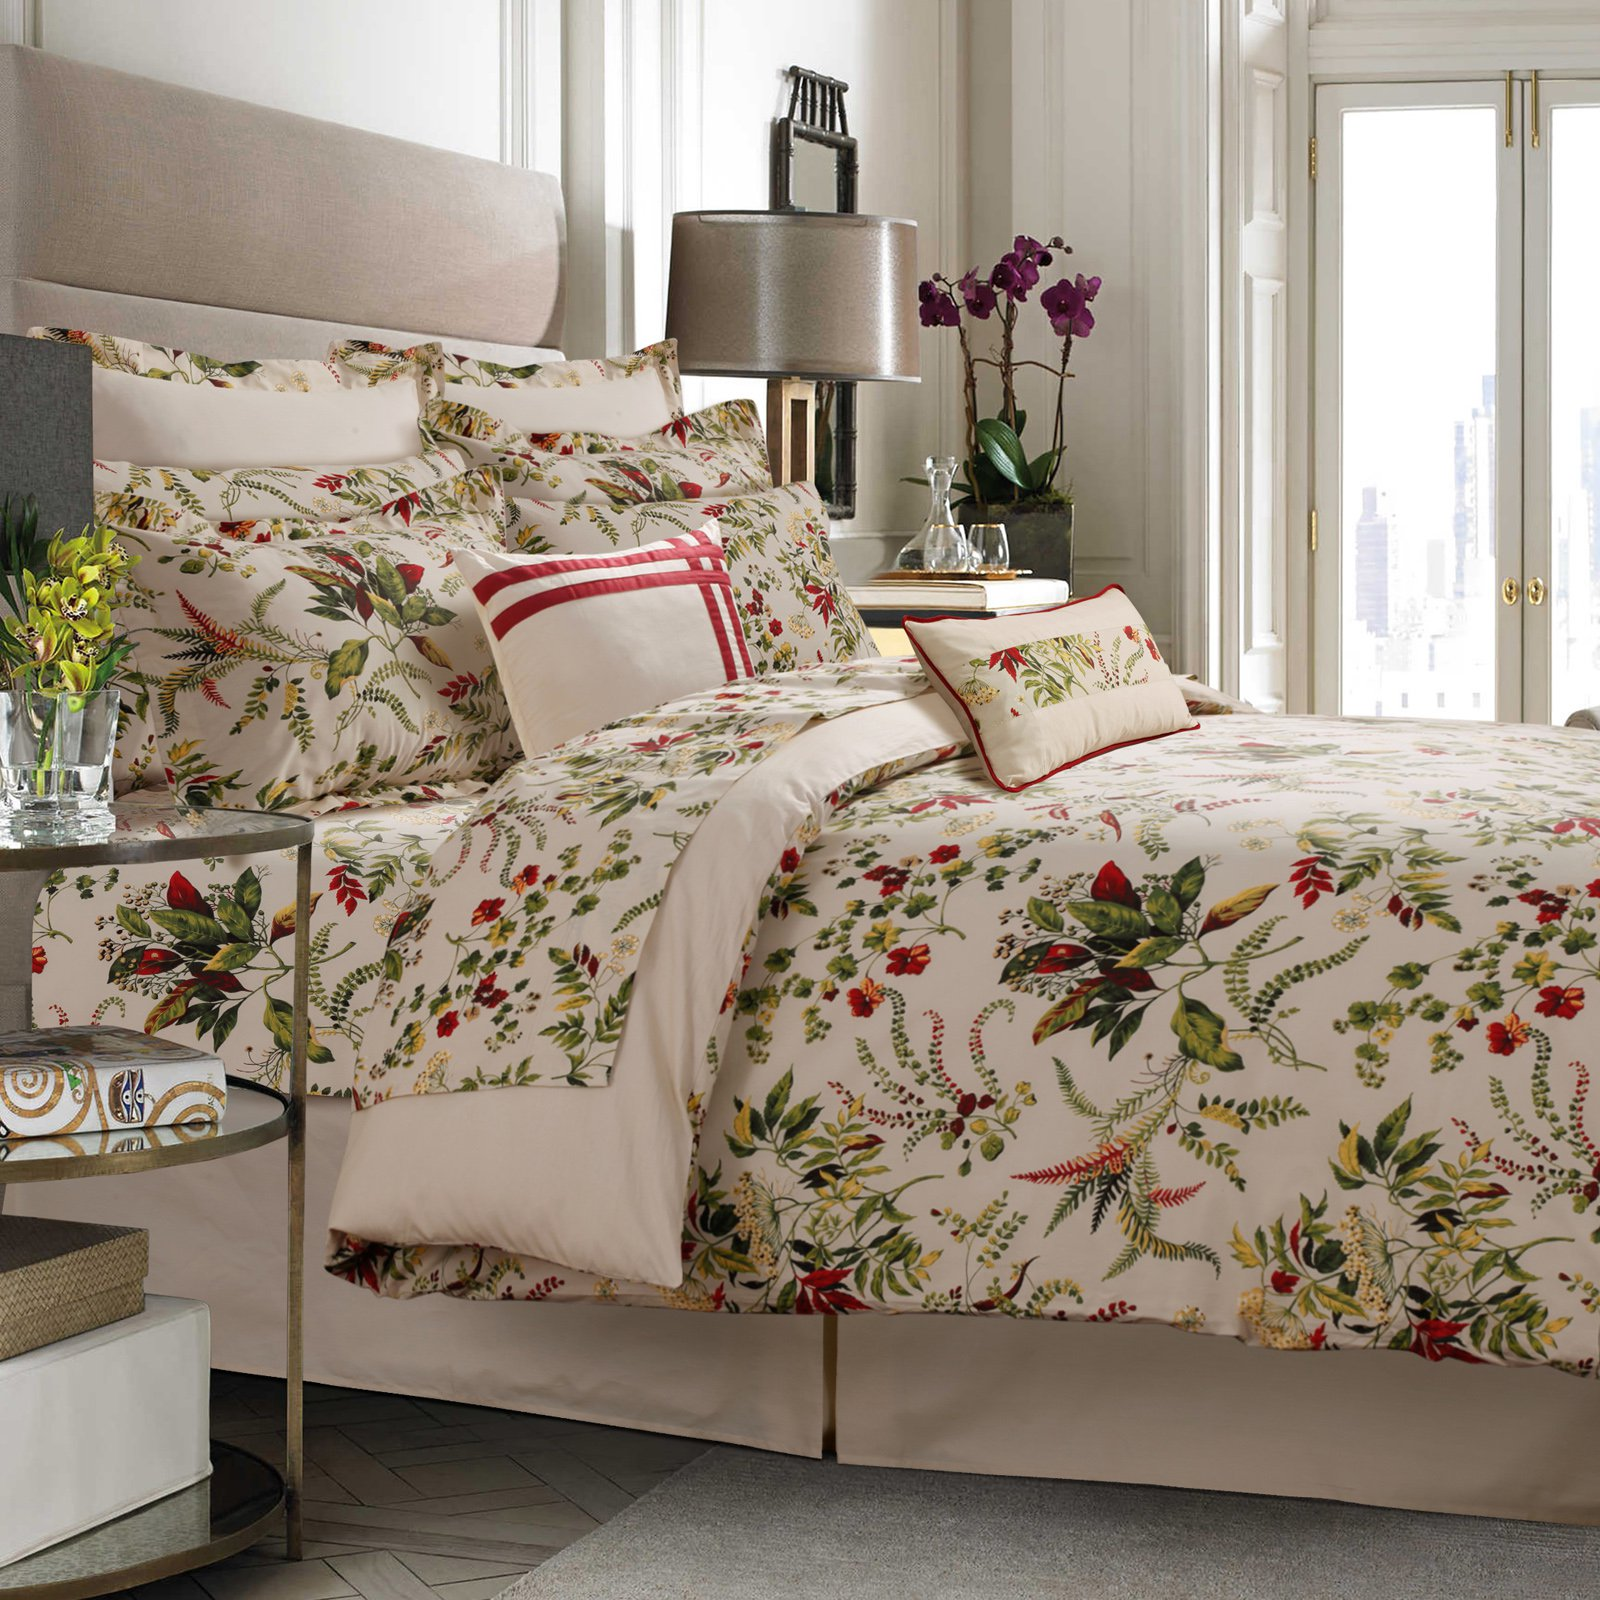 Tribeca Living Maui 300TC Egyptian Cotton Percale 5-Piece Printed Duvet Set